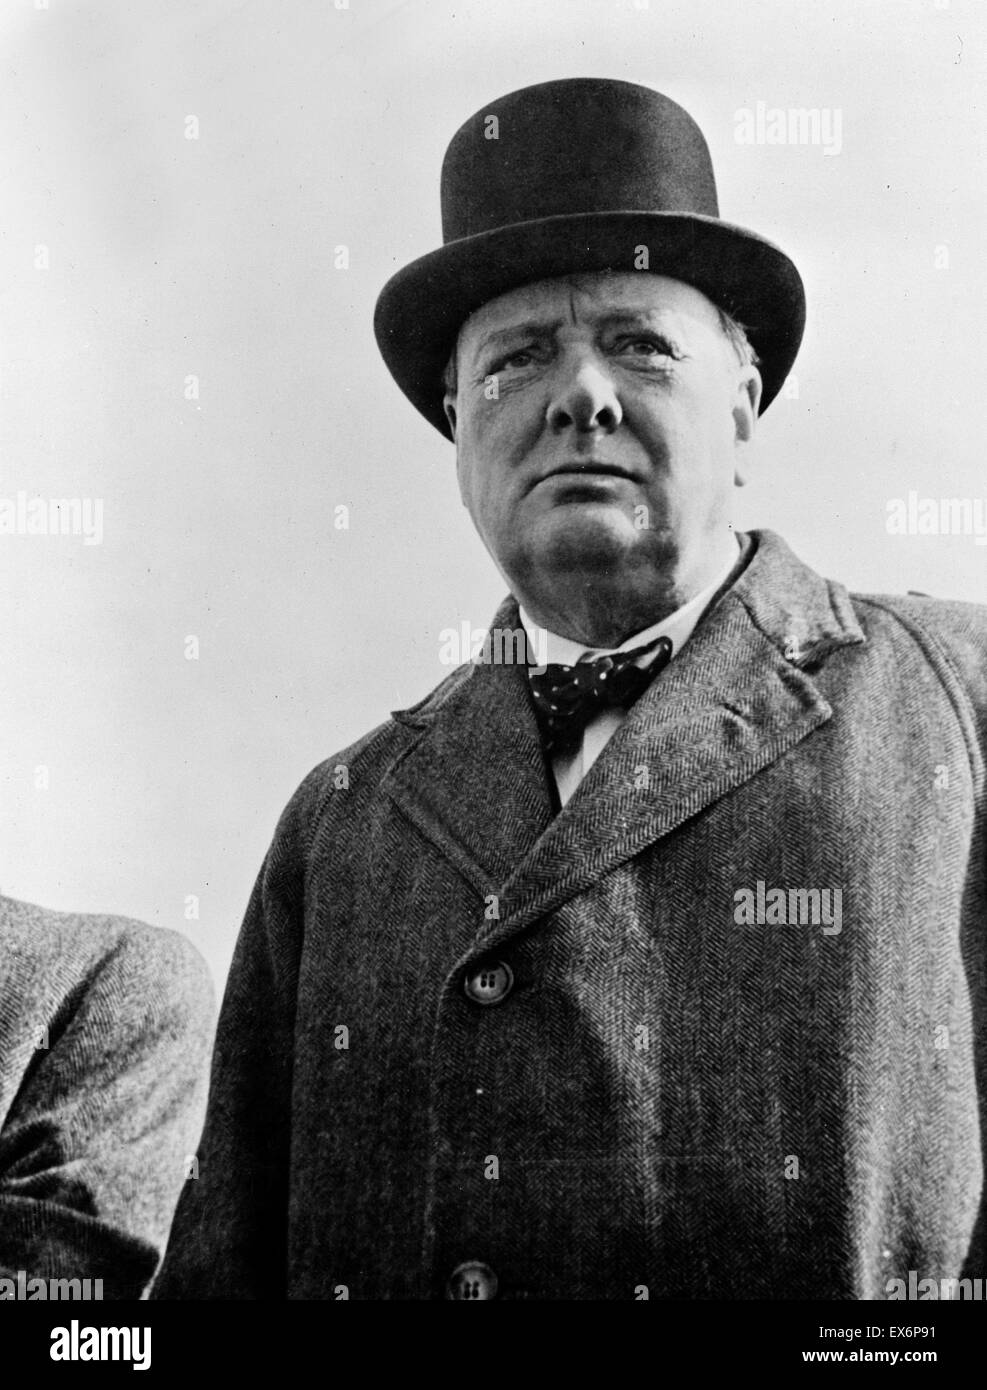 Winston Churchill as British wartime prime minister 1941 - Stock Image